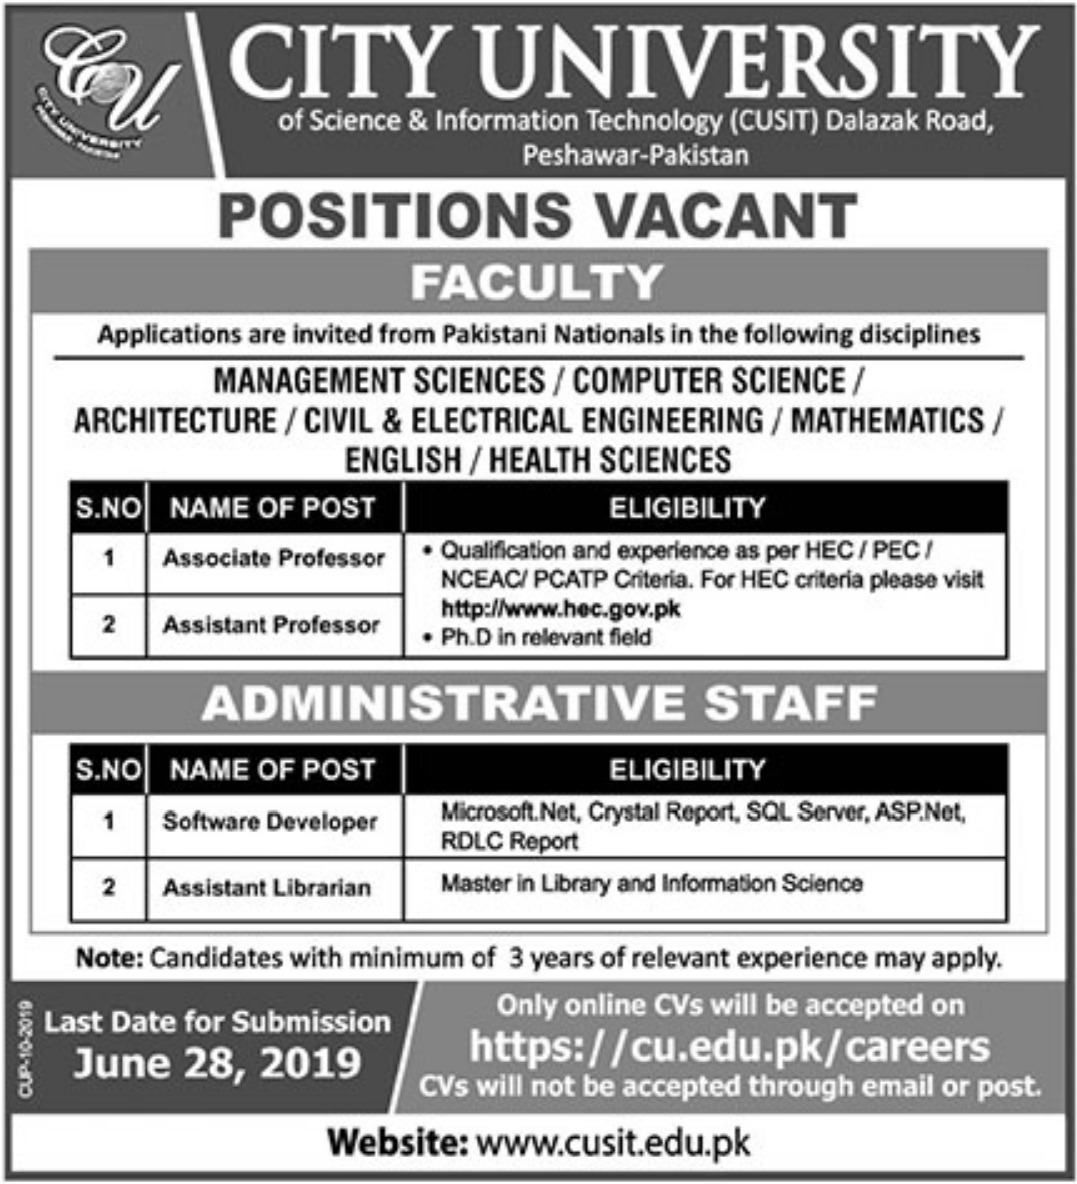 City University Peshawar Jobs 2019 Khyber Pakhtunkhwa